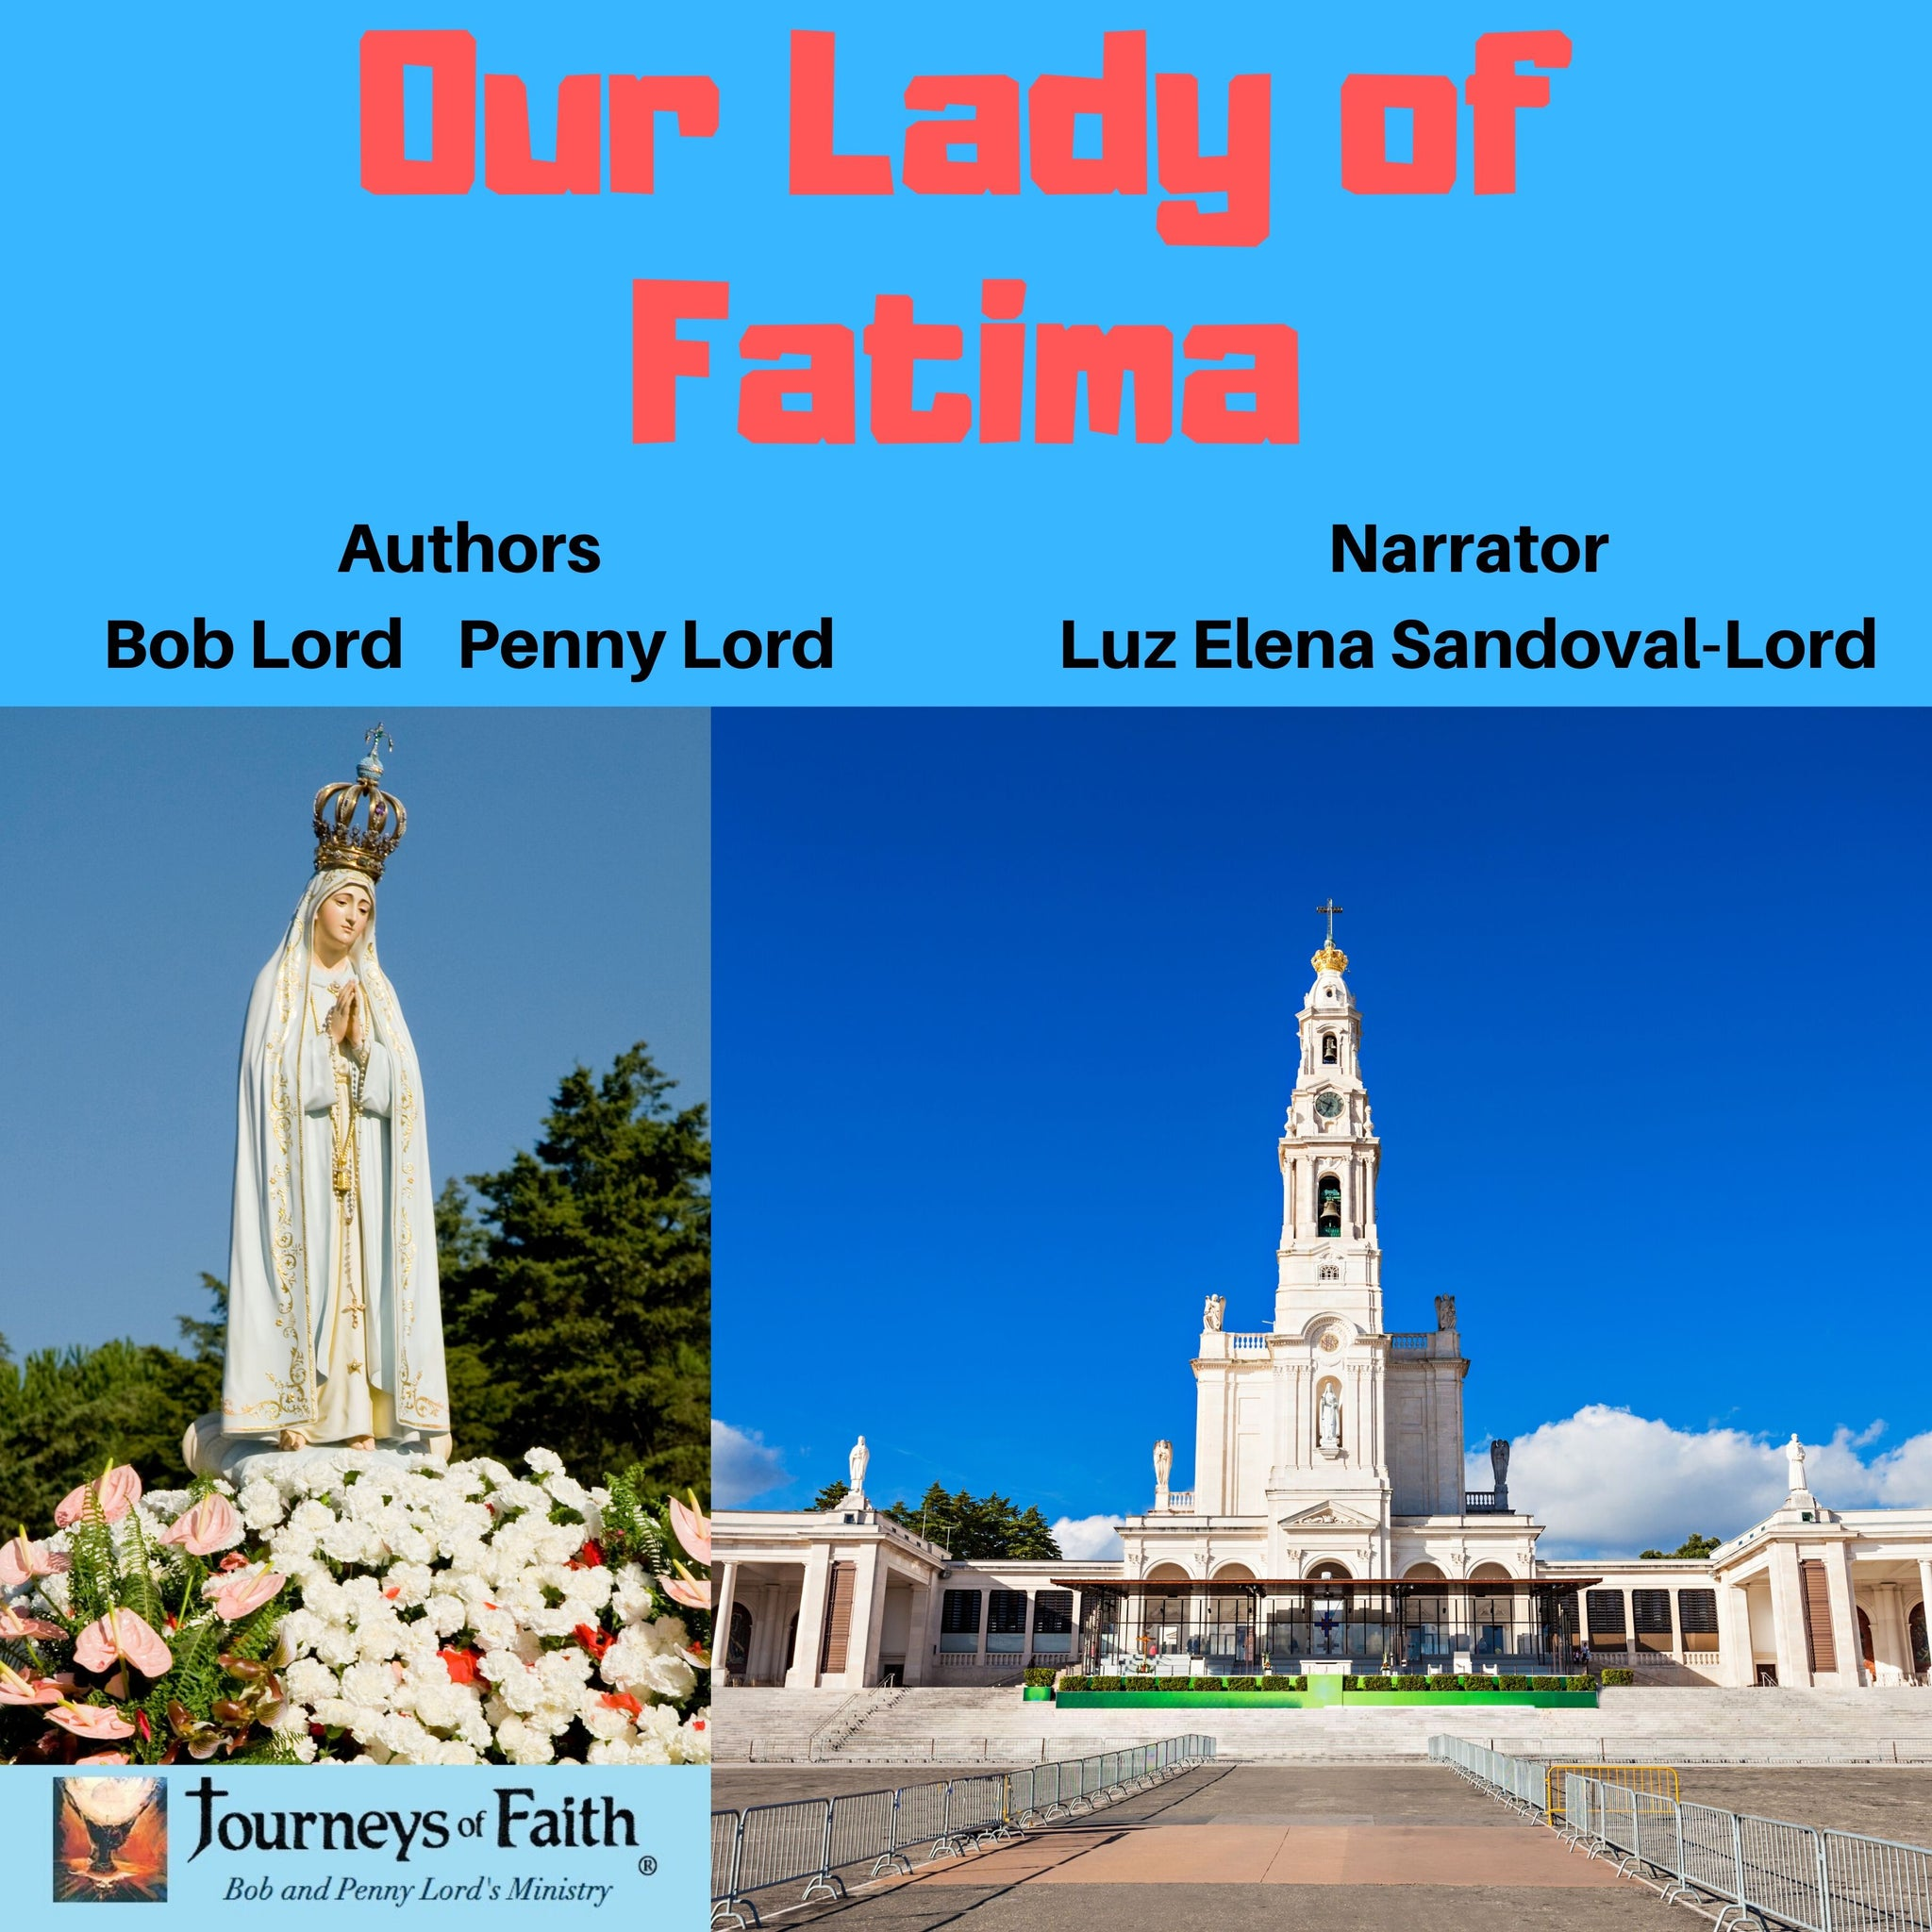 Our Lady of Fatima Audiobook Audiobook Bob and Penny Lord Ministry